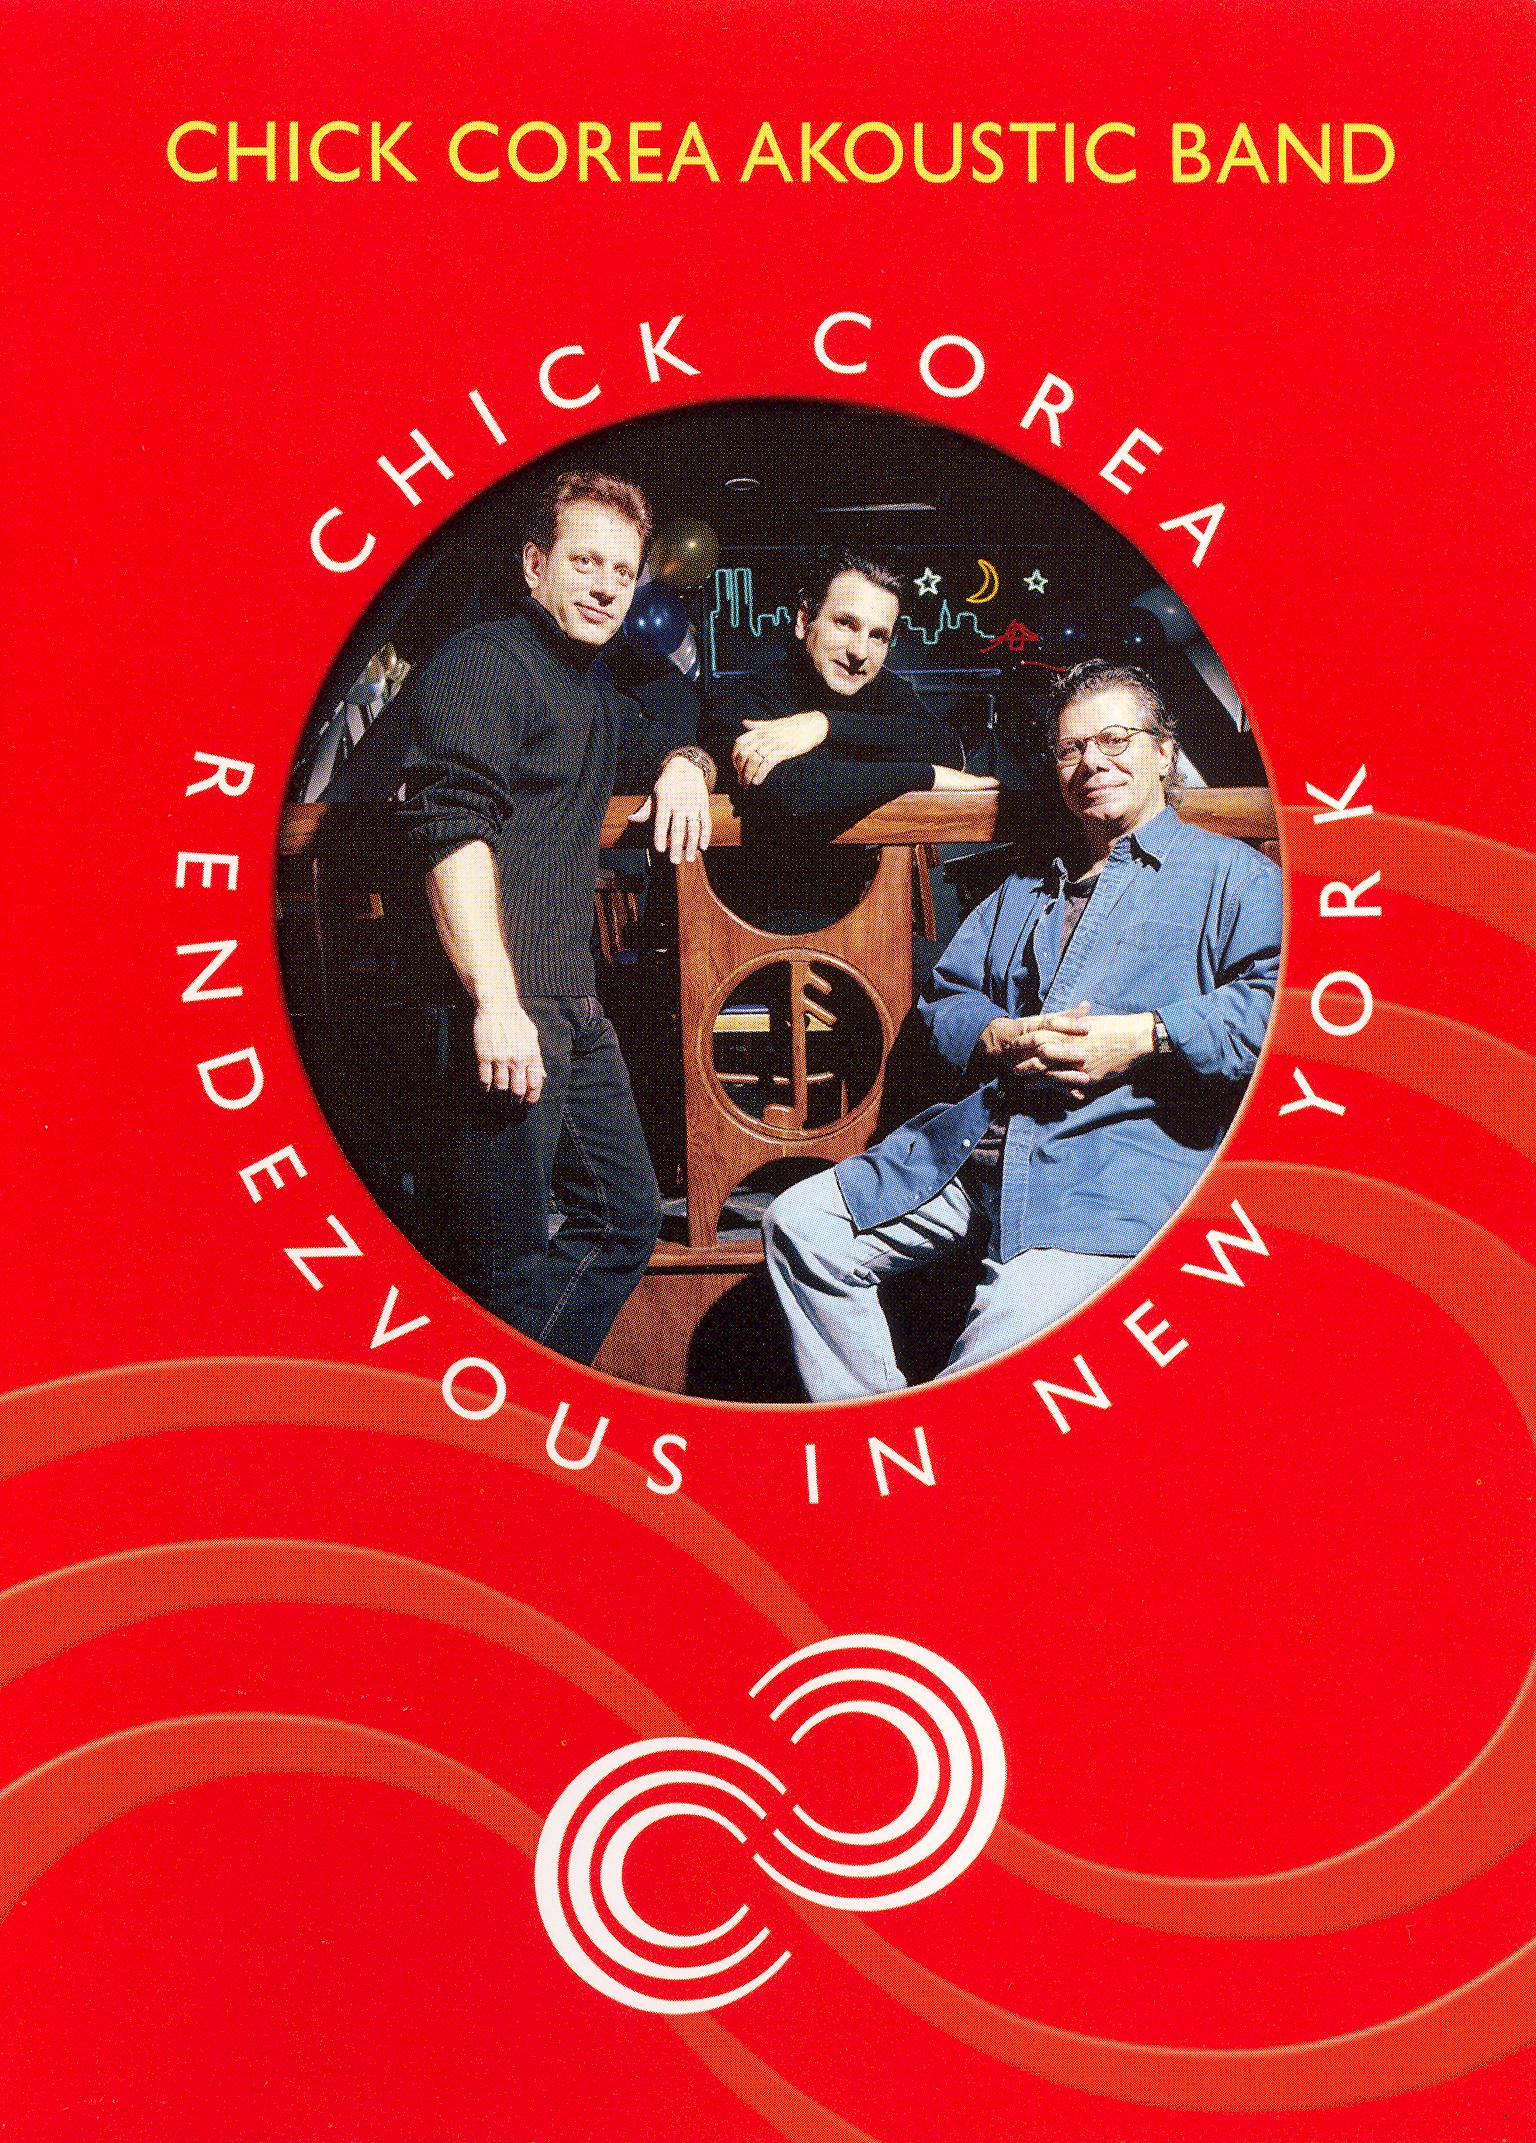 Chick Corea: Rendezvous in New York - Chick Corea Akoustic Band